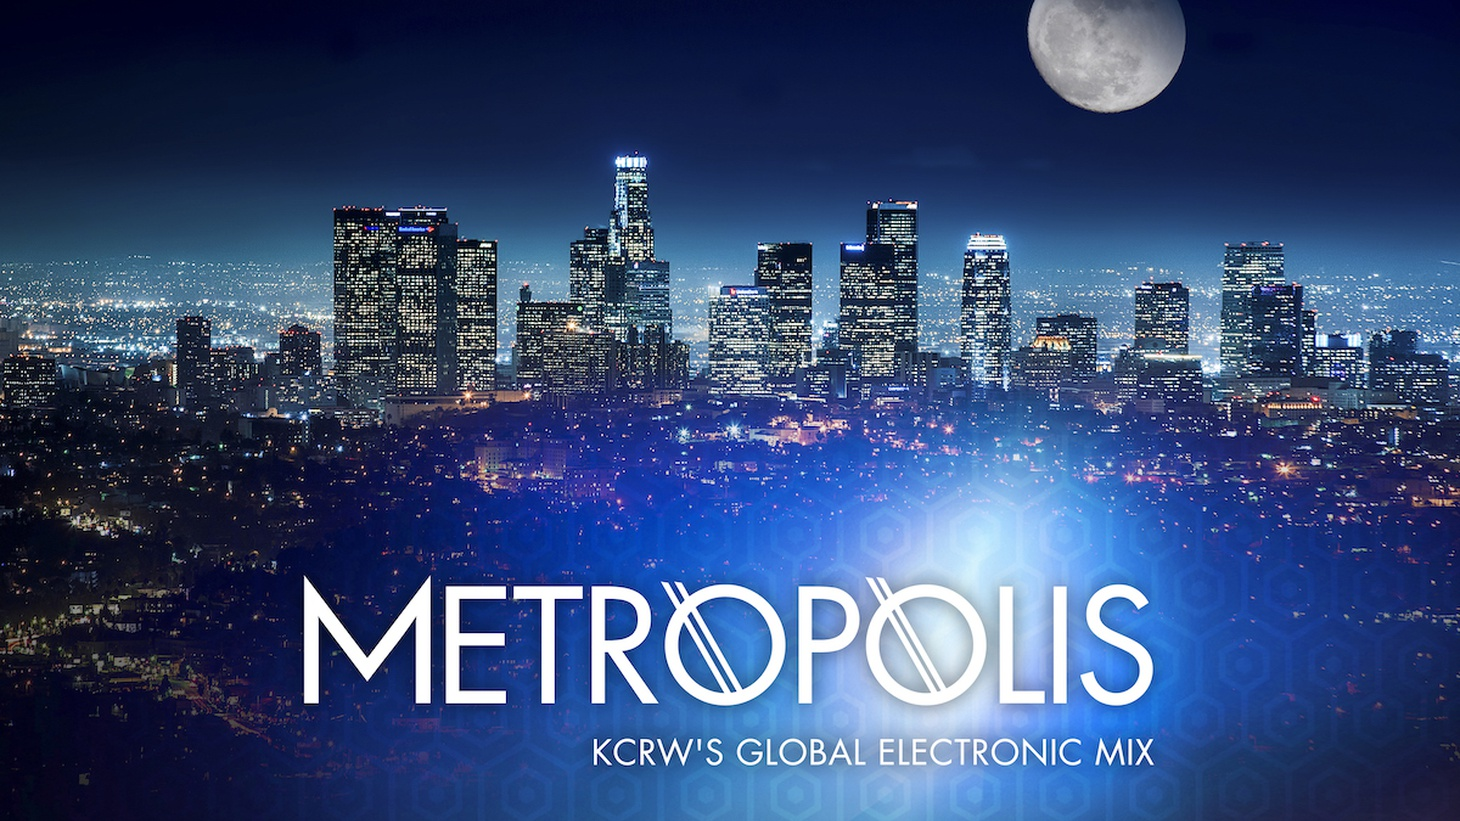 Nuspirit Helsinki will be Jason's guest in Metropolis on Thursday May 2 in the 9 o'clock hour.  Nuspirit Helsinki hail from Finland and the self-titled new album showcases an exquisite modern soul sensibility. DJ Ender will also be playing later the same night at Club Sugar in Santa Monica.